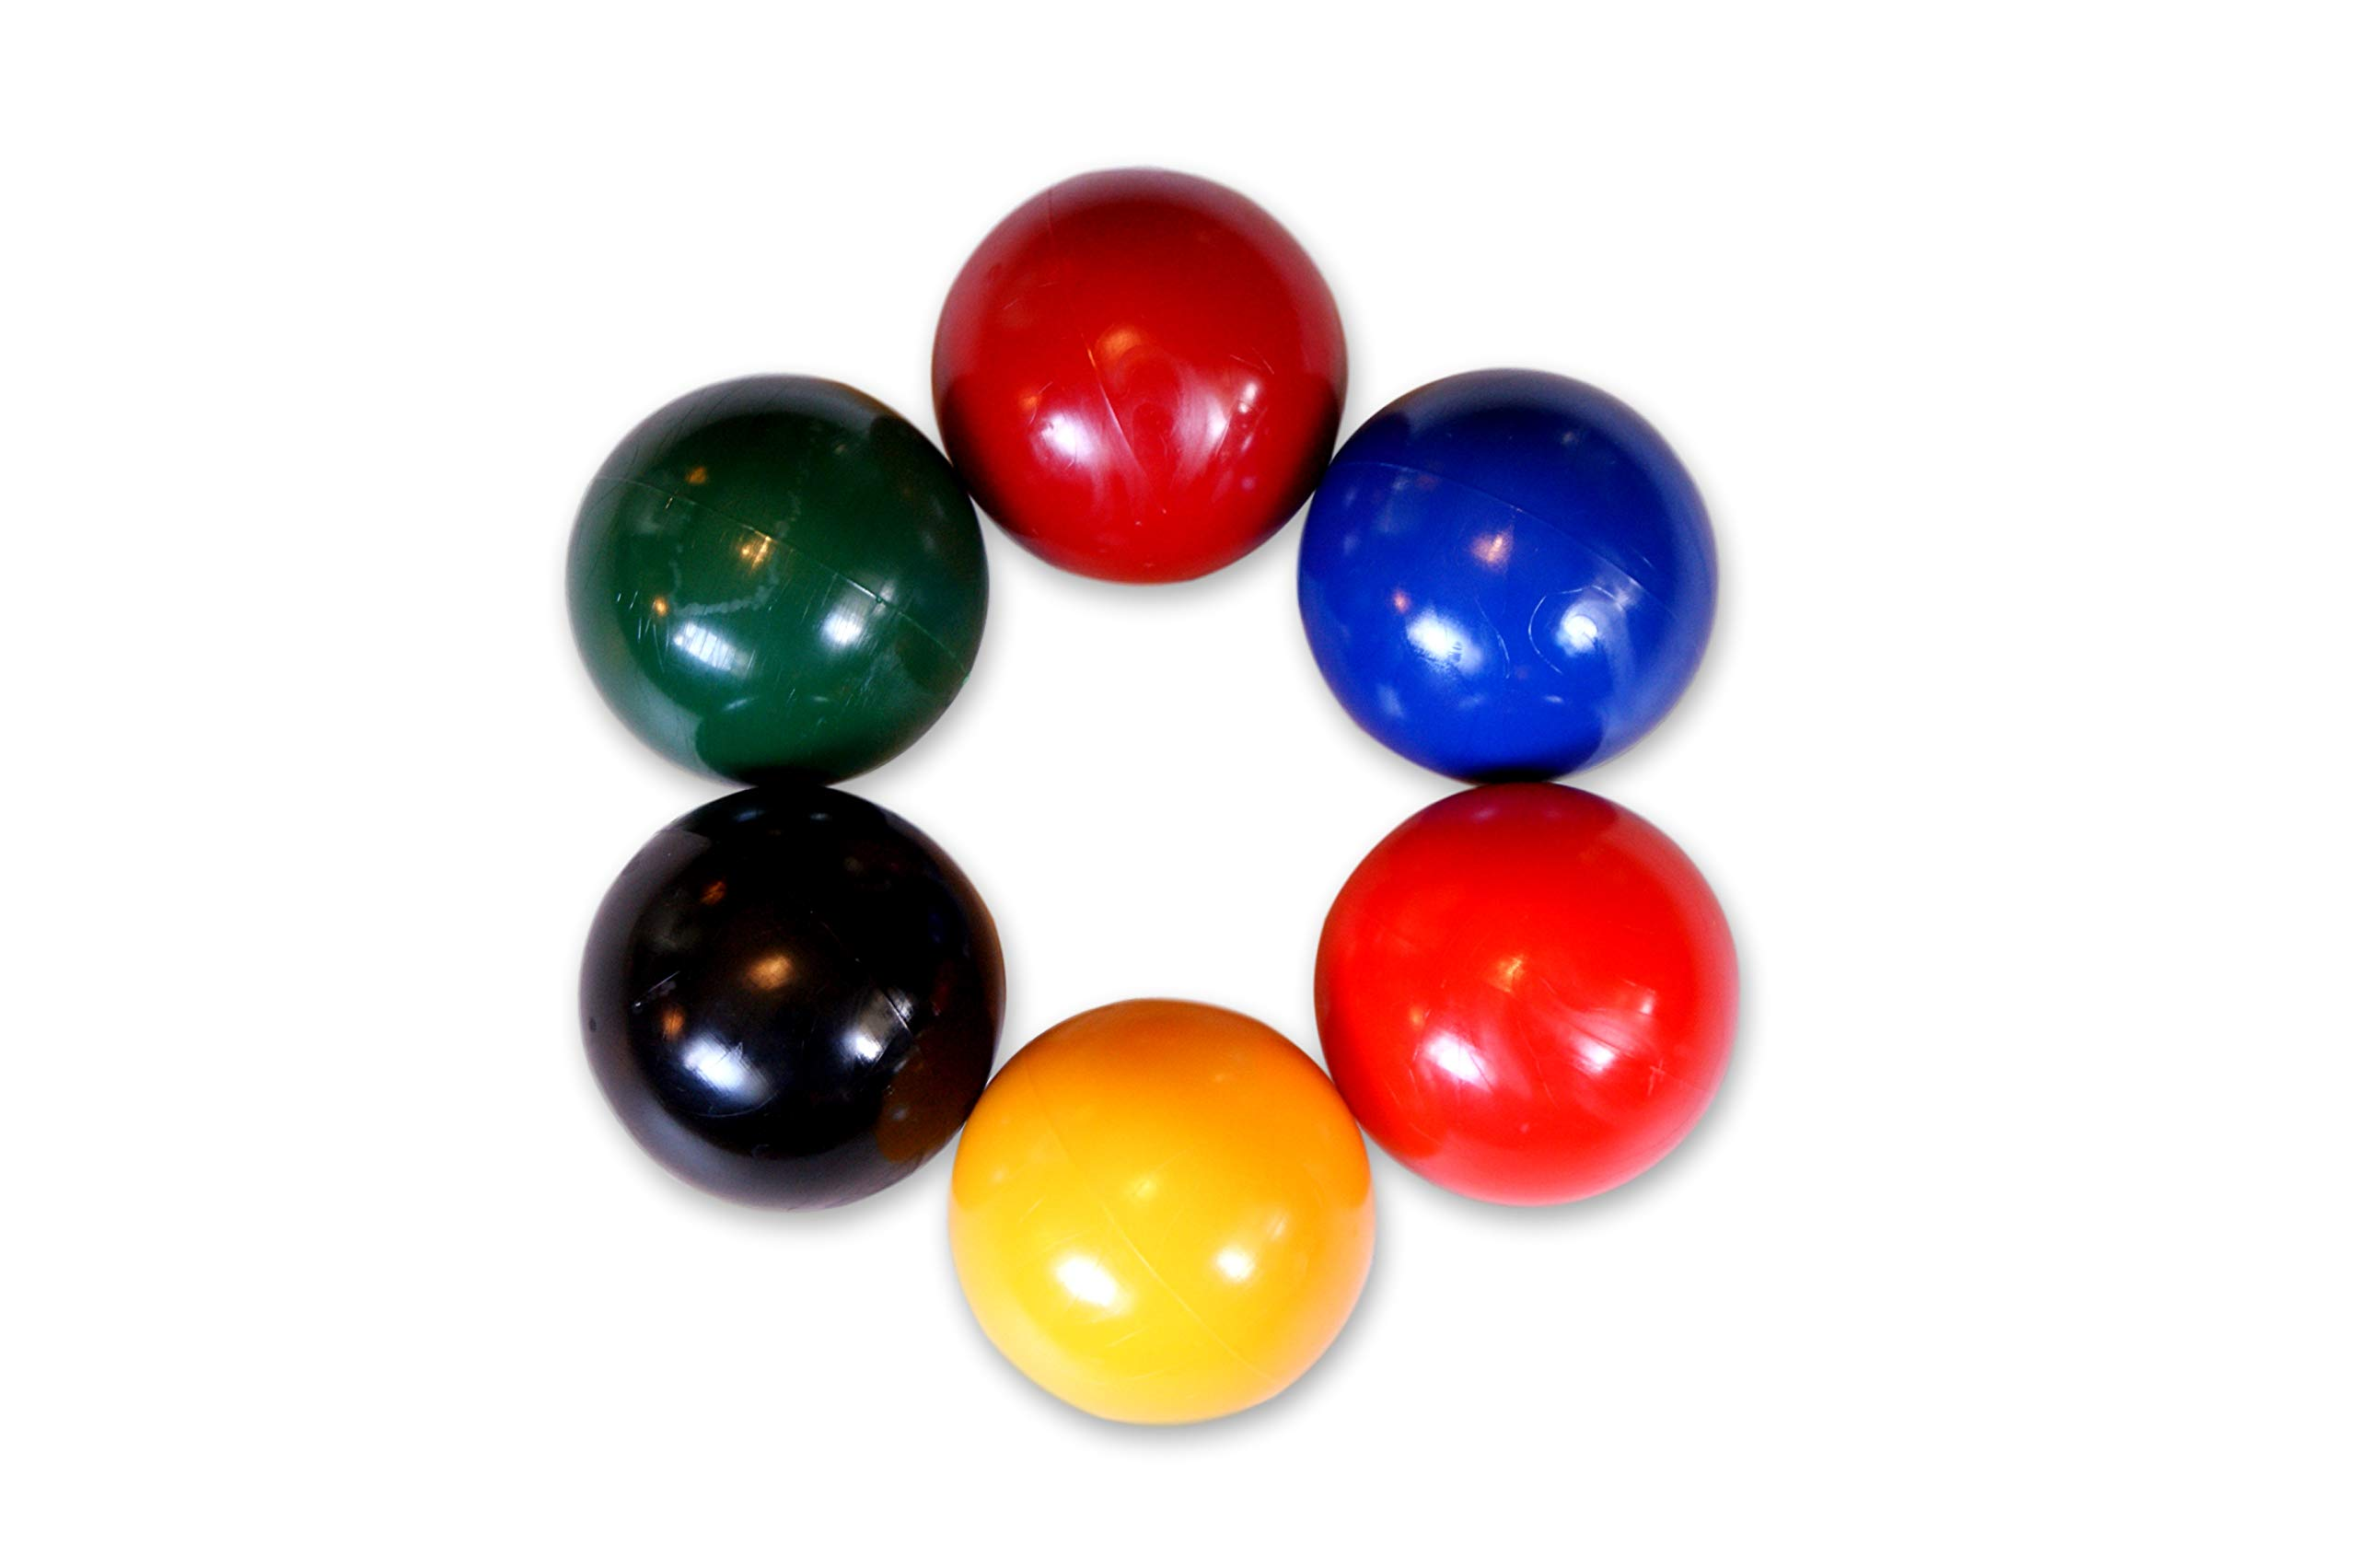 AmishToyBox.com Set of 6 Replacement Croquet Balls, Made in The USA, by AmishToyBox.com